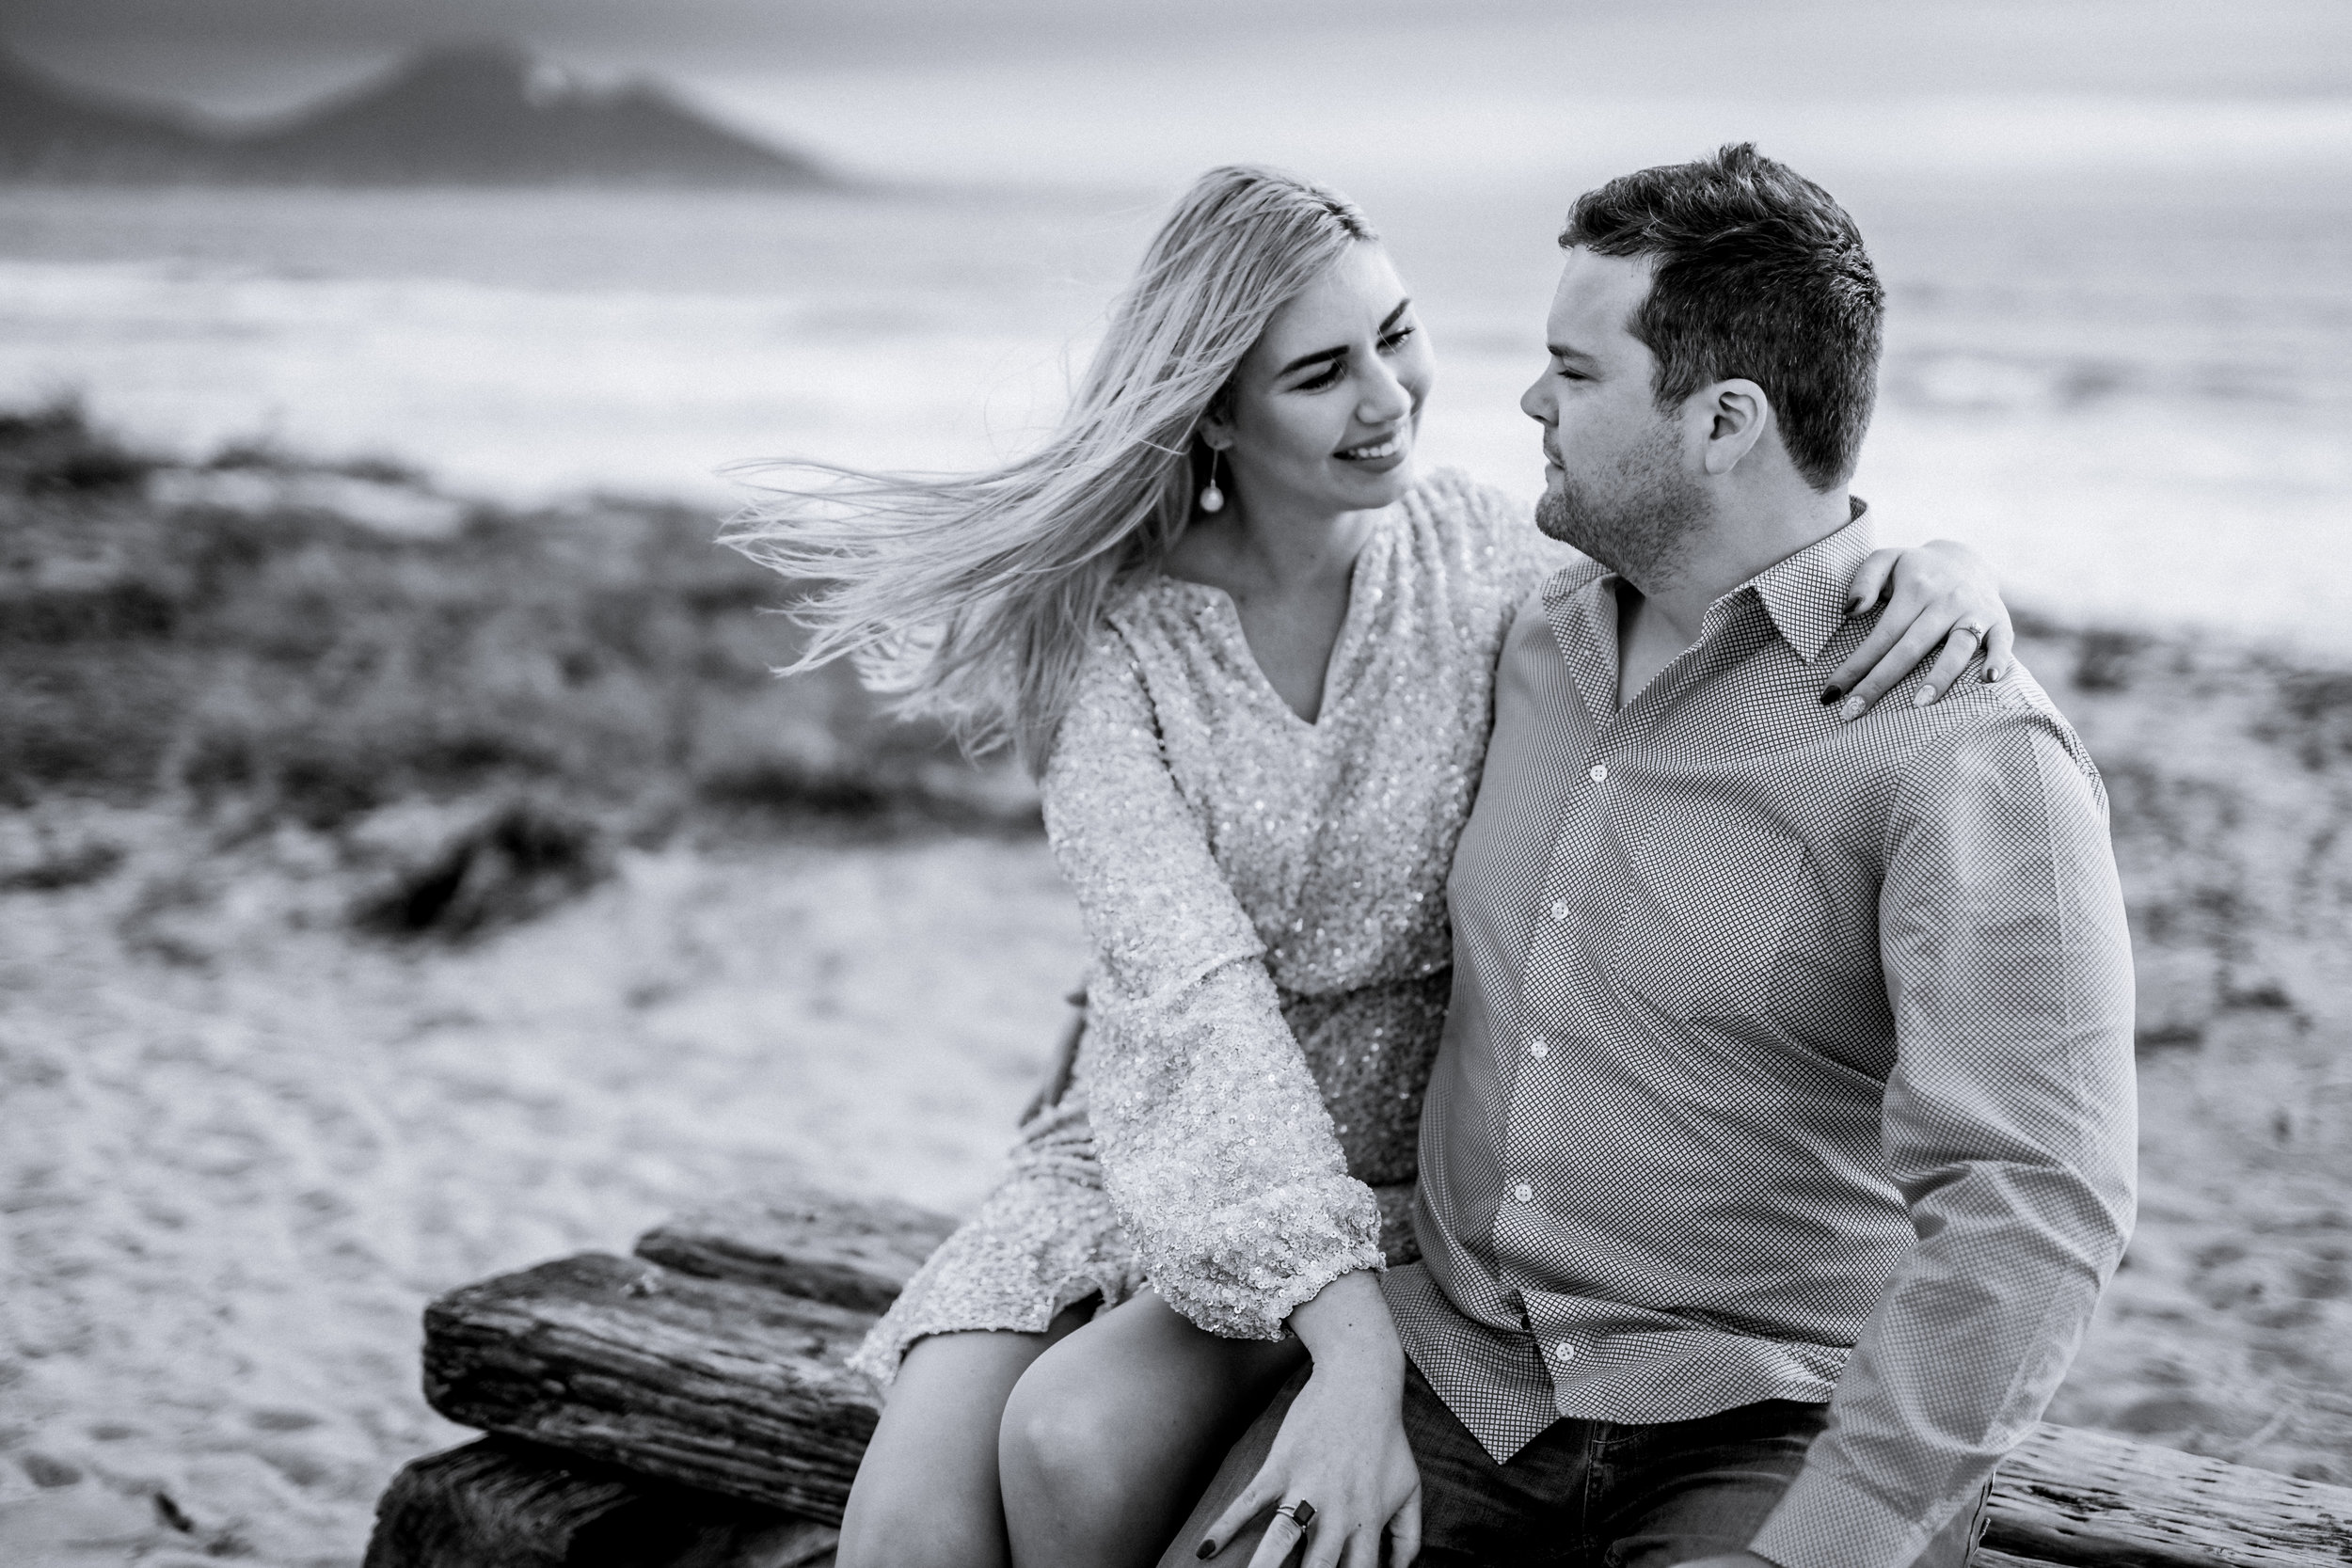 Odelya and Ralph - Cape Town Couples Beach_Seaside Photo session by Cape Image Co. (Large Files)-4.jpg